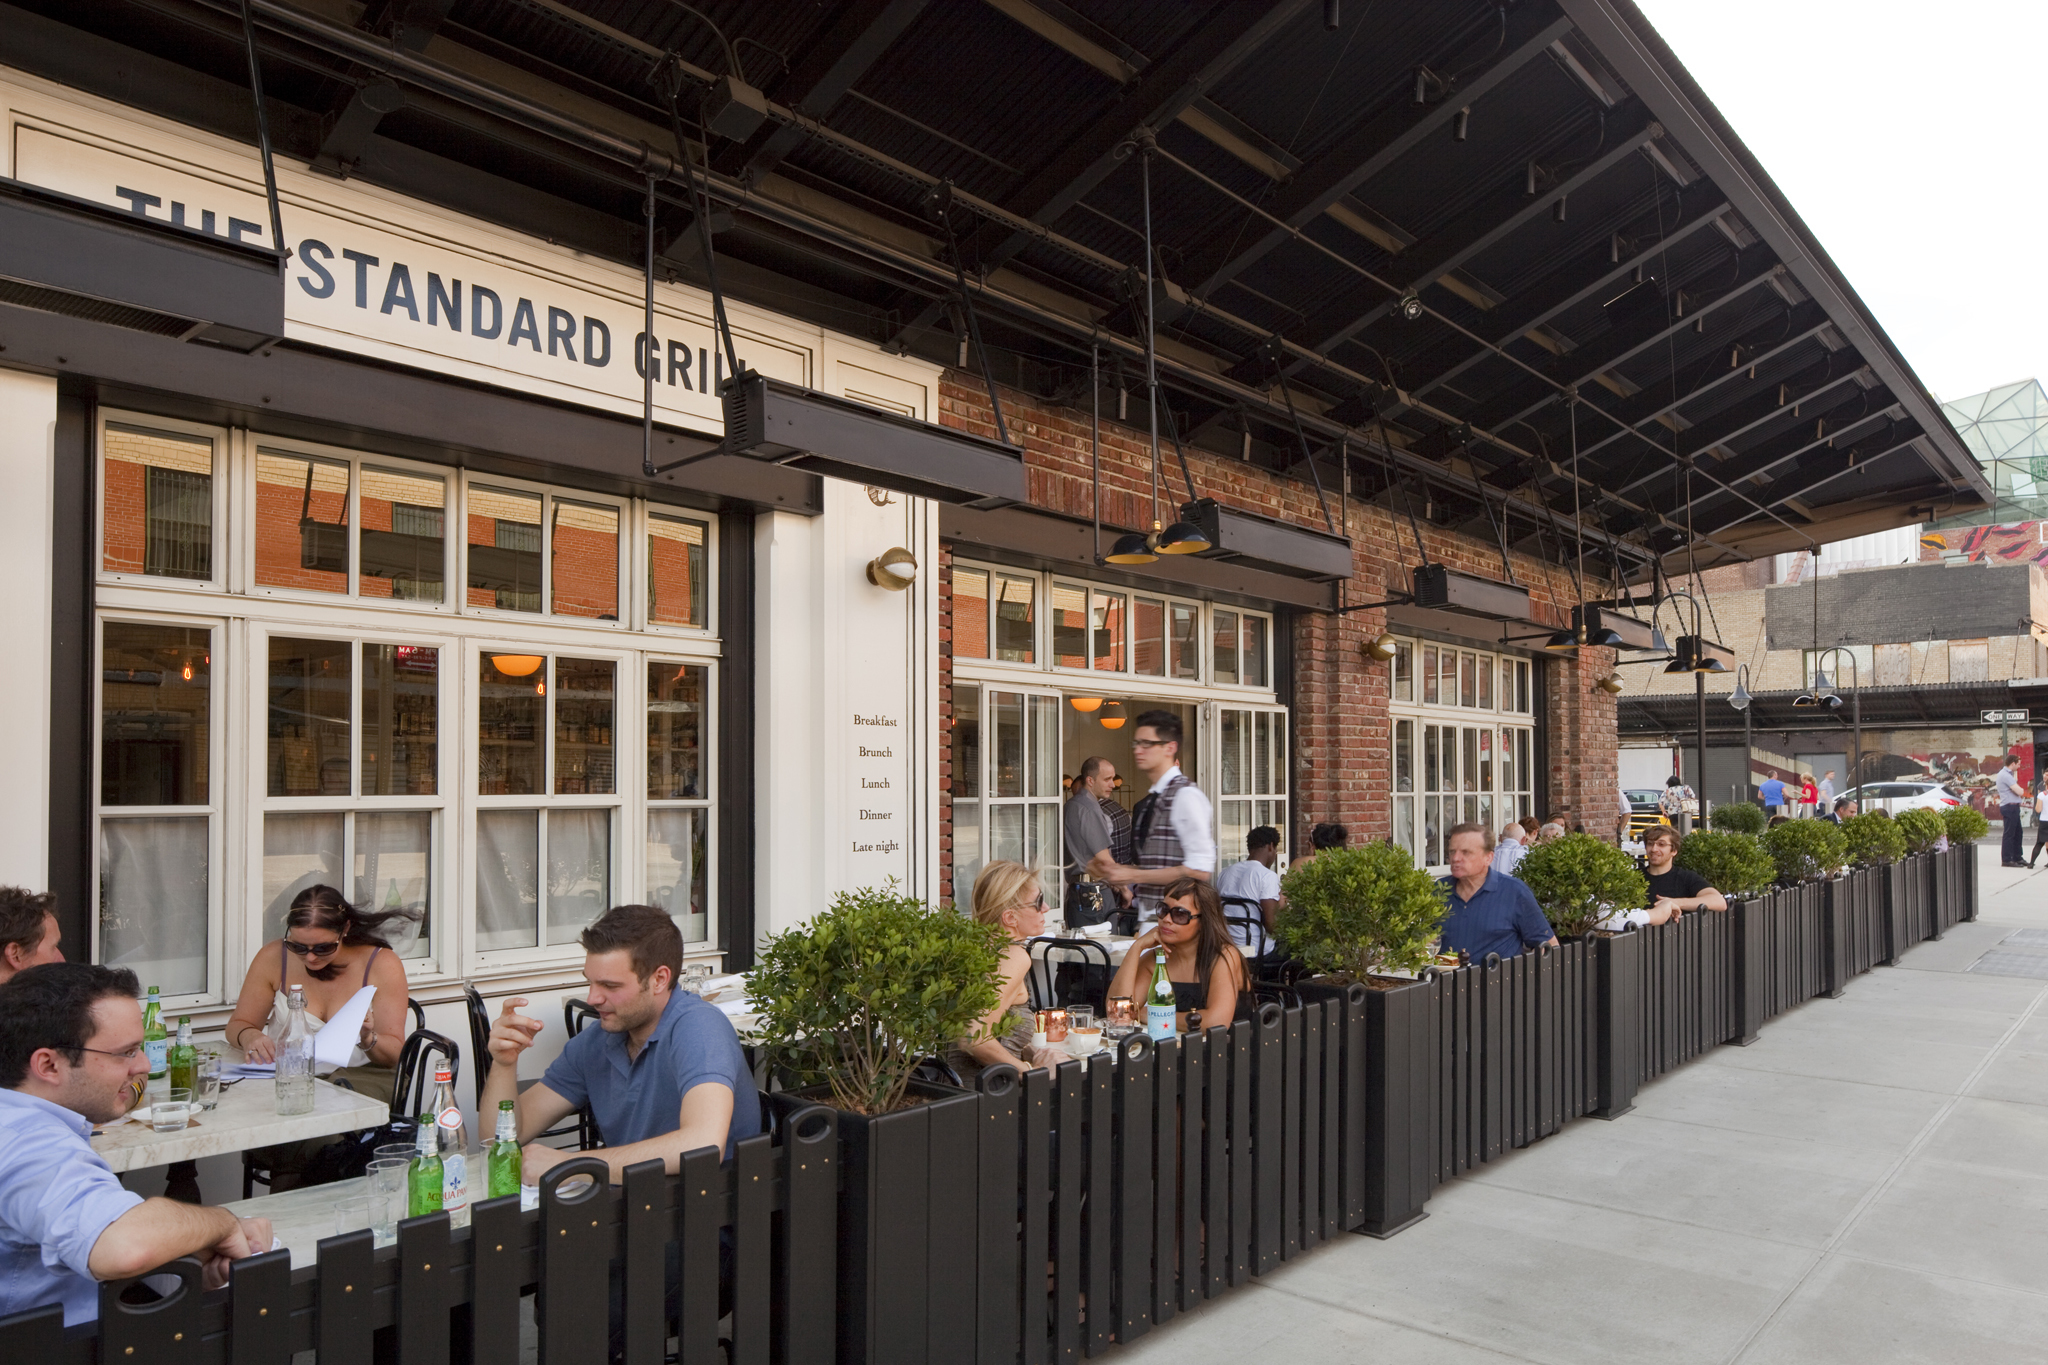 The best outdoor brunch spots in NYC